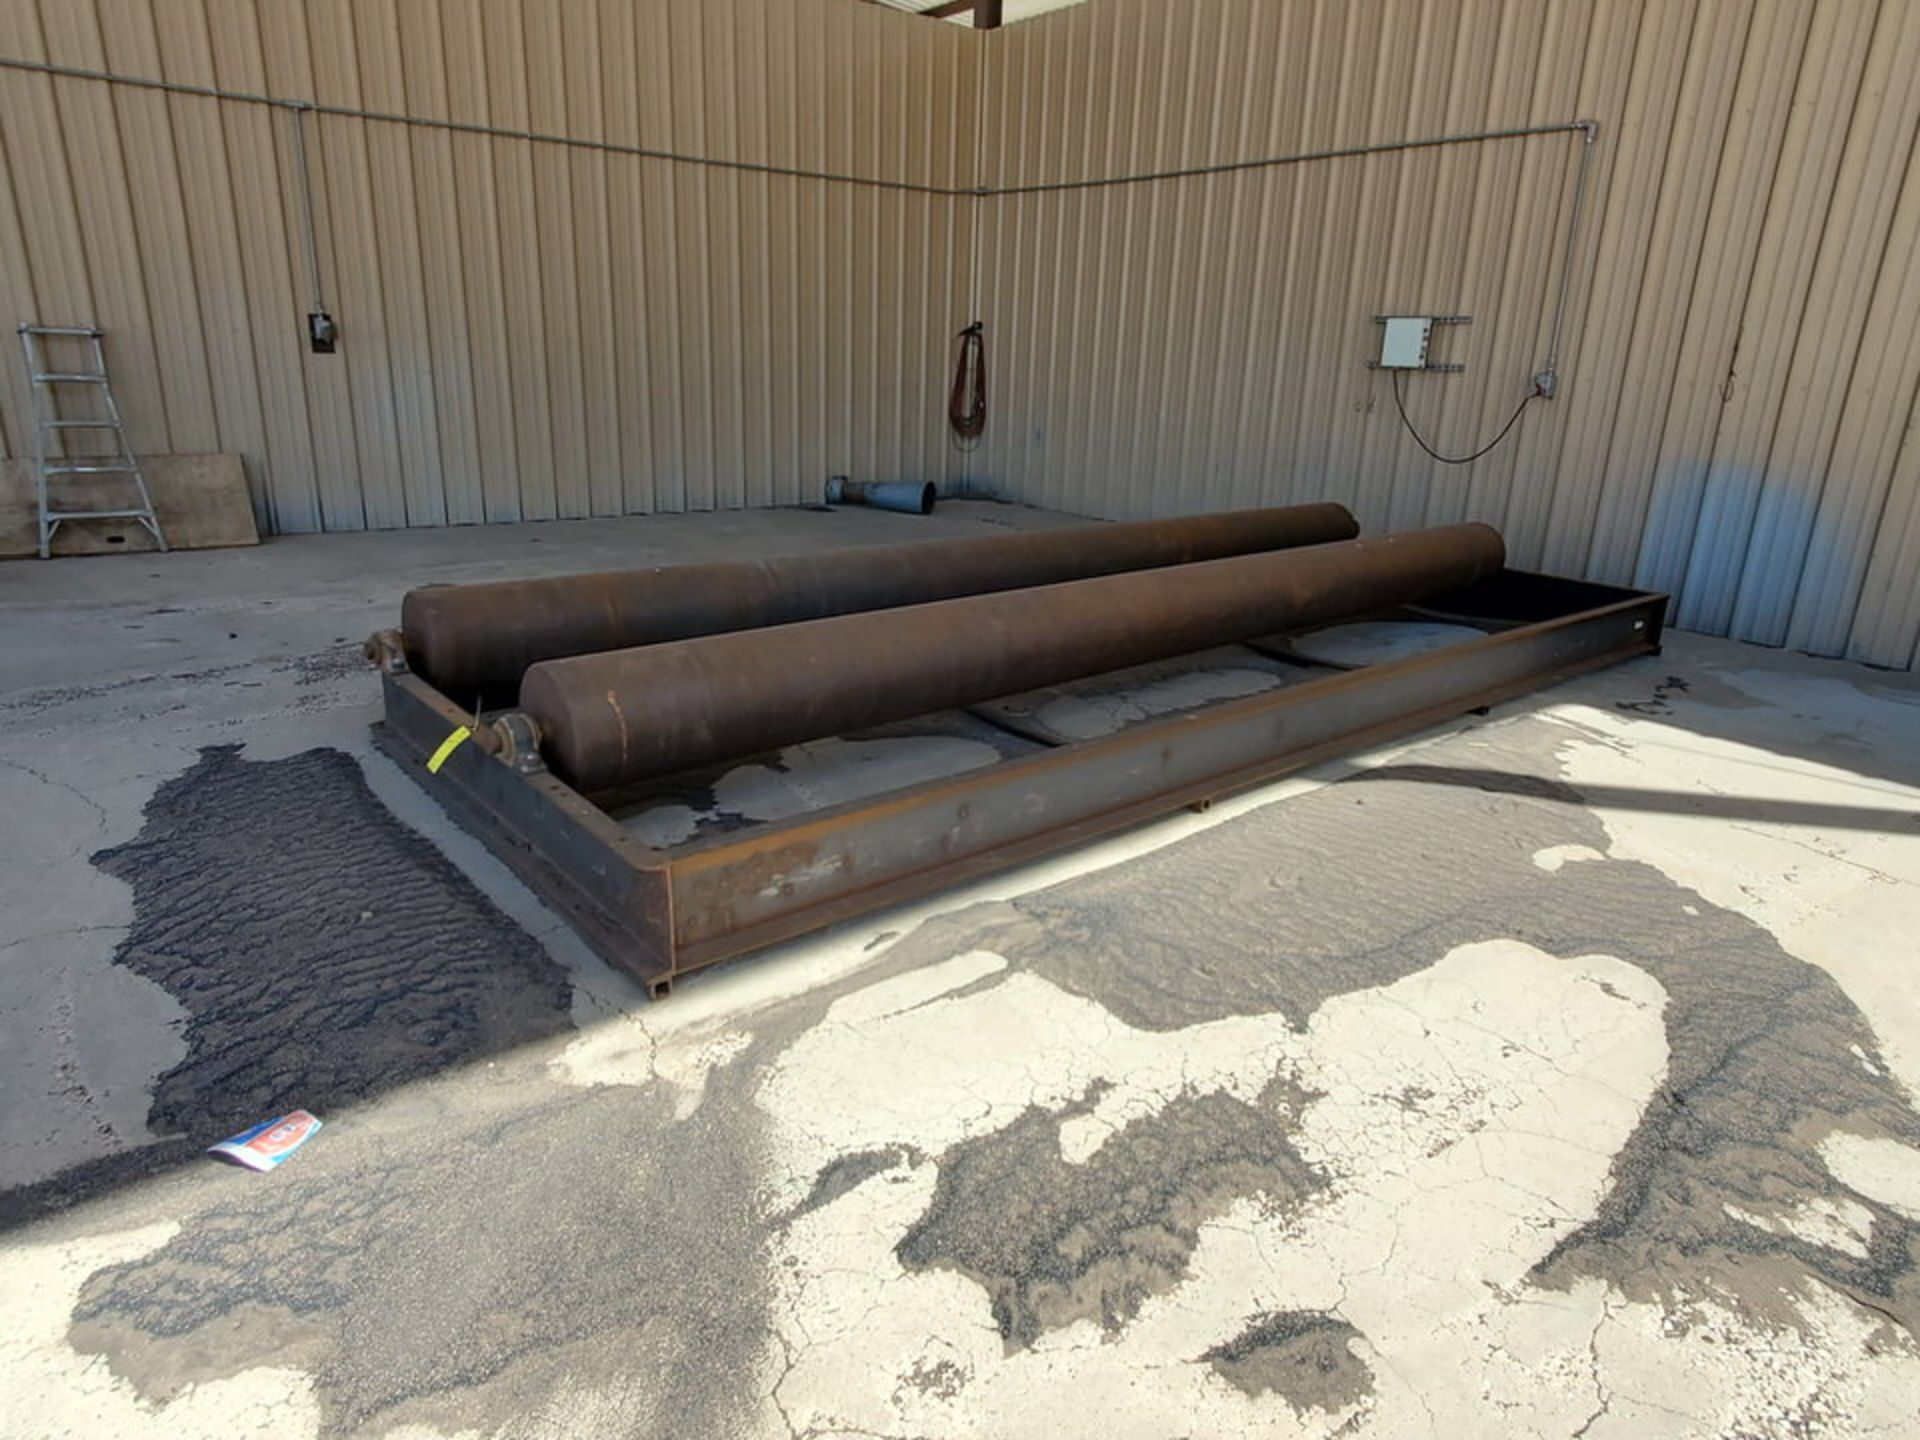 """Turn Roll 8' x 20'6"""", 16"""" O.D. Rolls, 1' Base; Overall Dims: 9'8""""W - Image 8 of 8"""